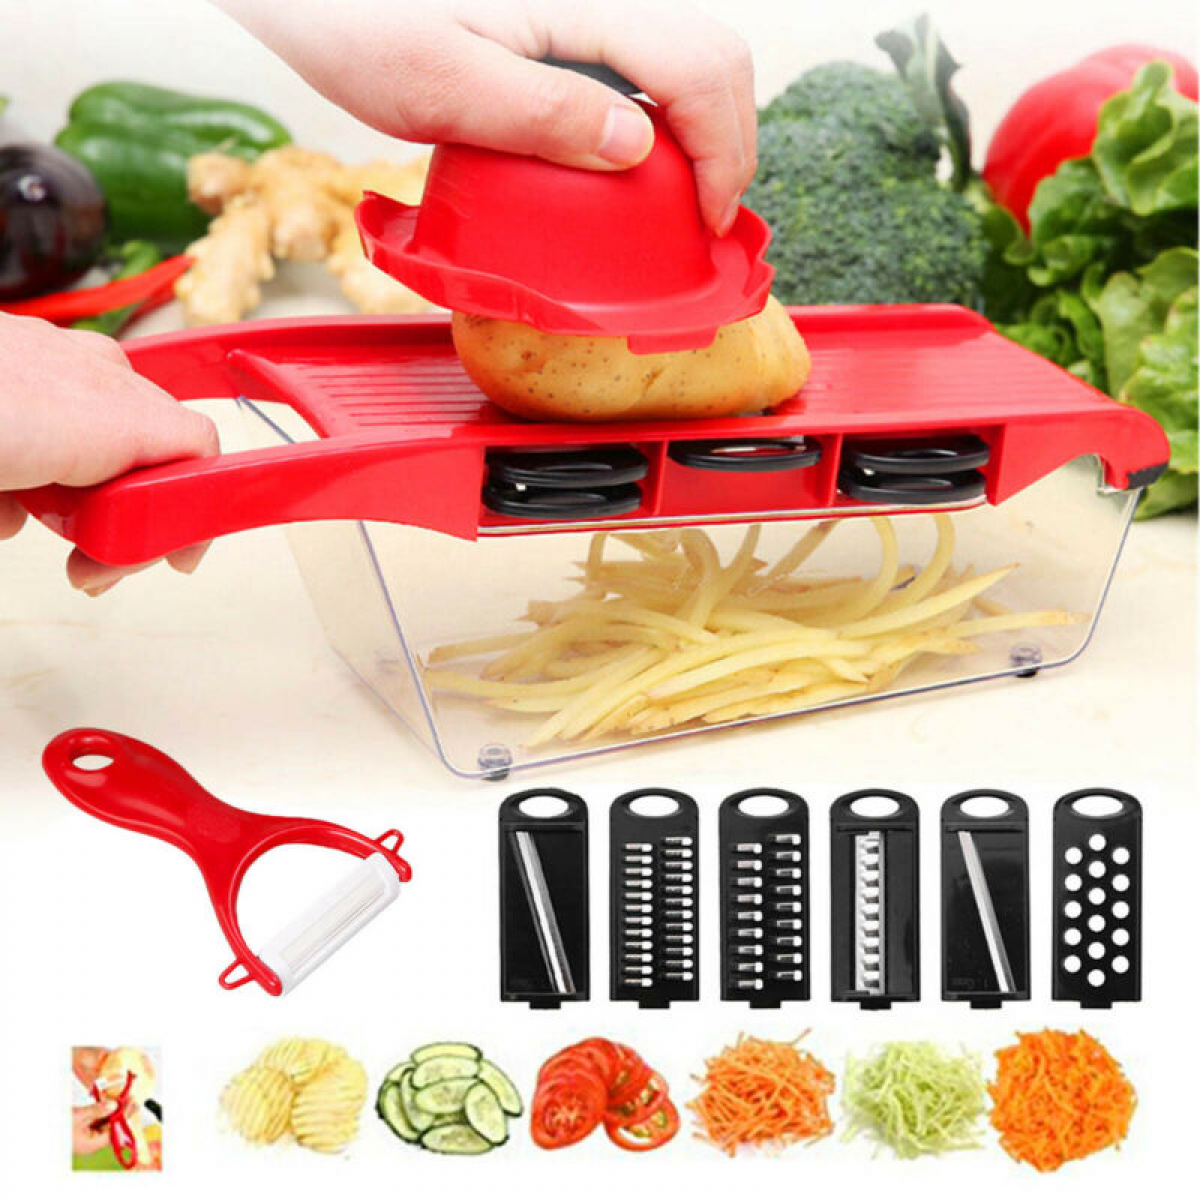 Mandoline Vegetable Slicer Potato Fruit Stainless Steel Kitc